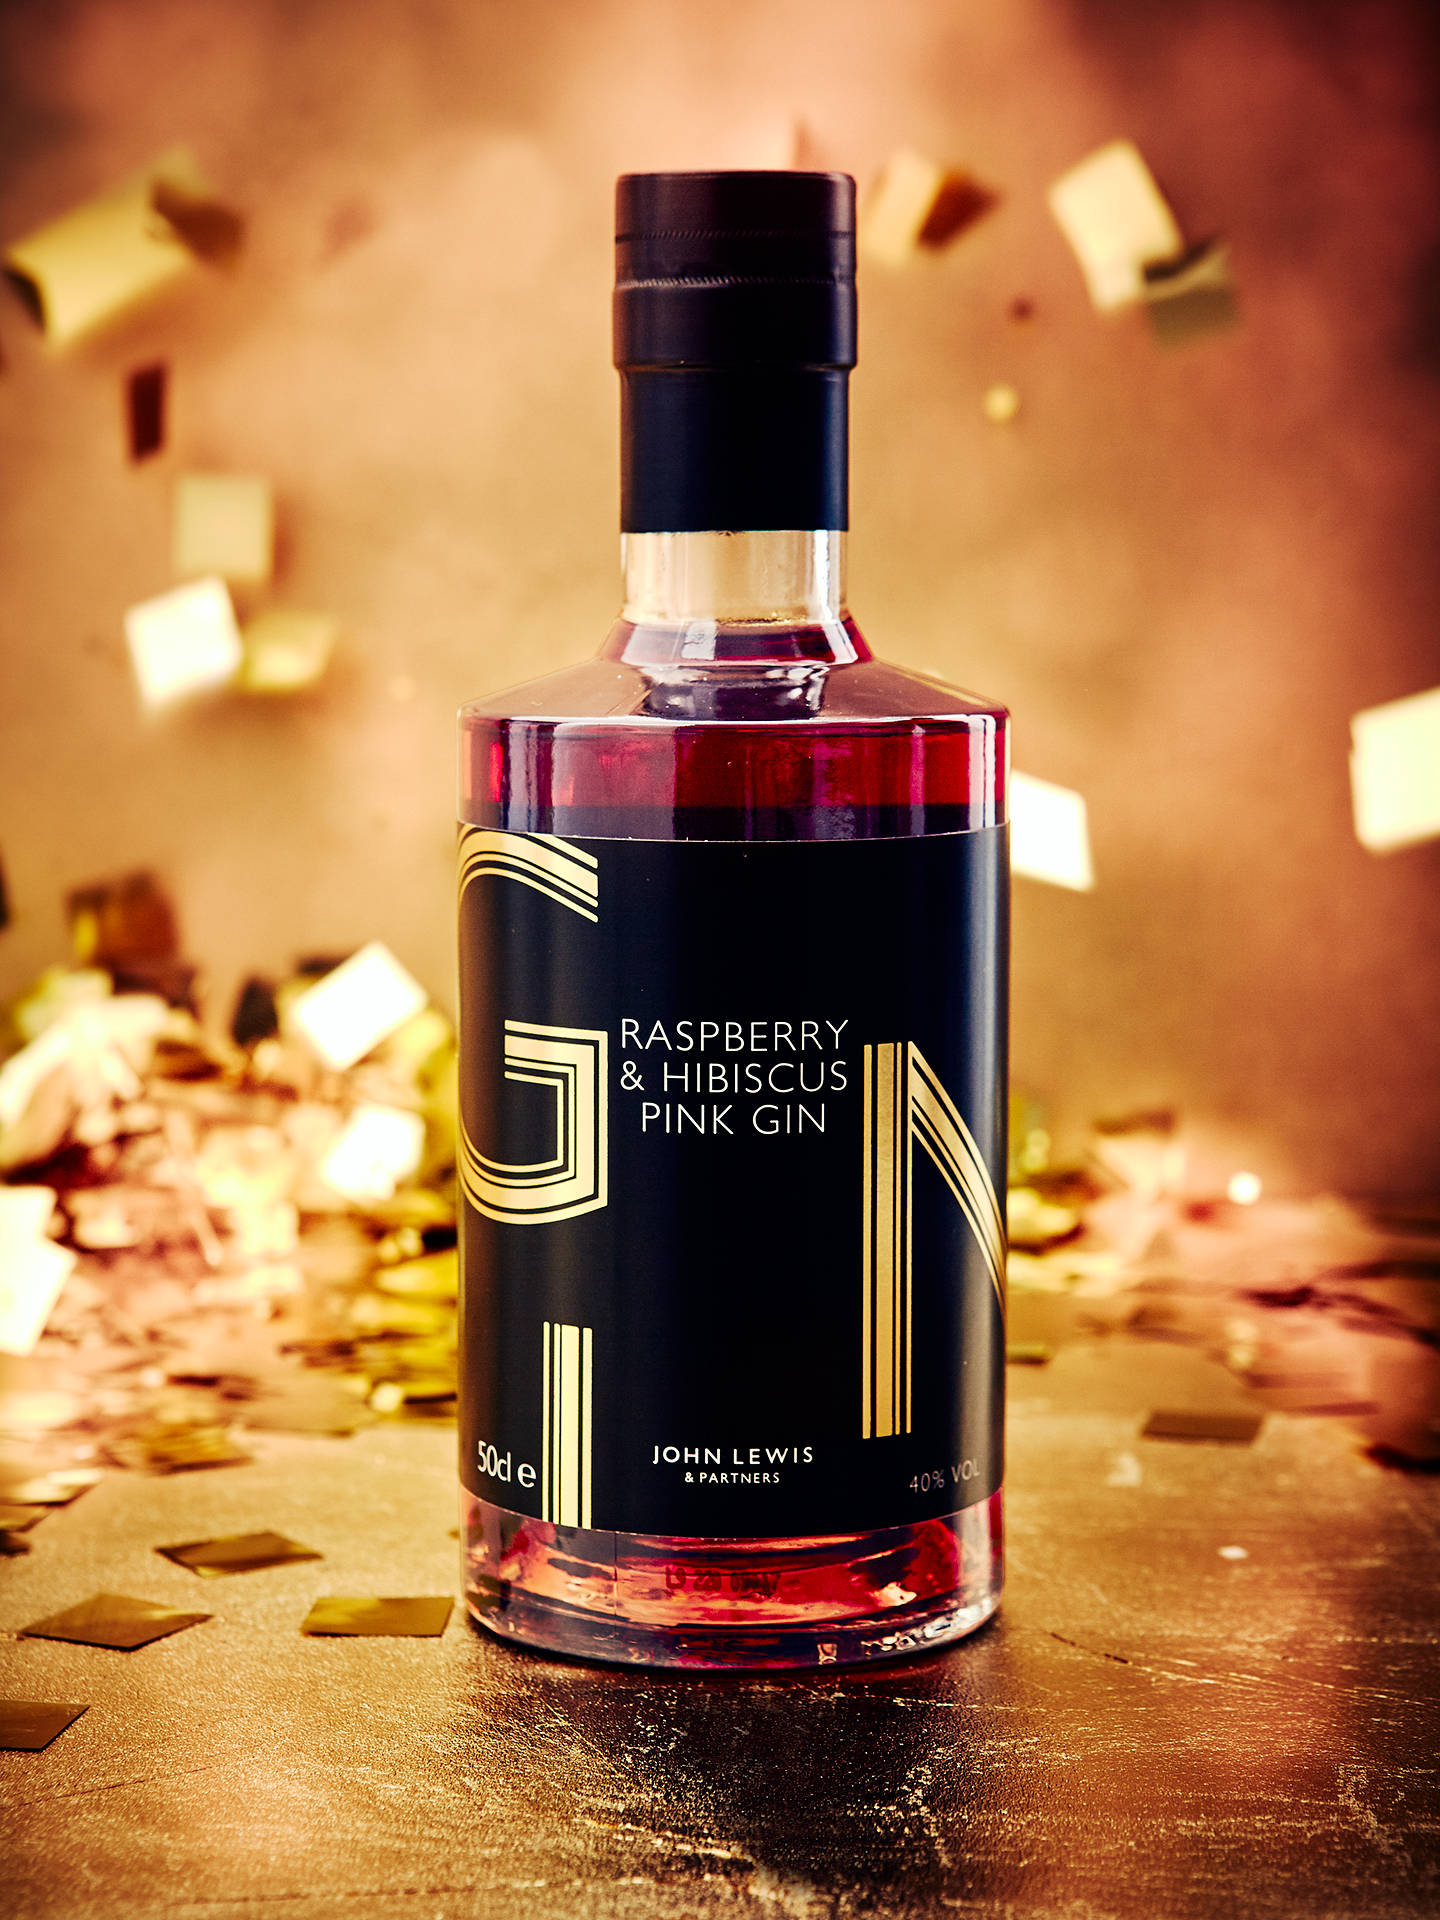 John Lewis & Partners Raspberry & Hibiscus Gin, 50cl by John Lewis & Partners